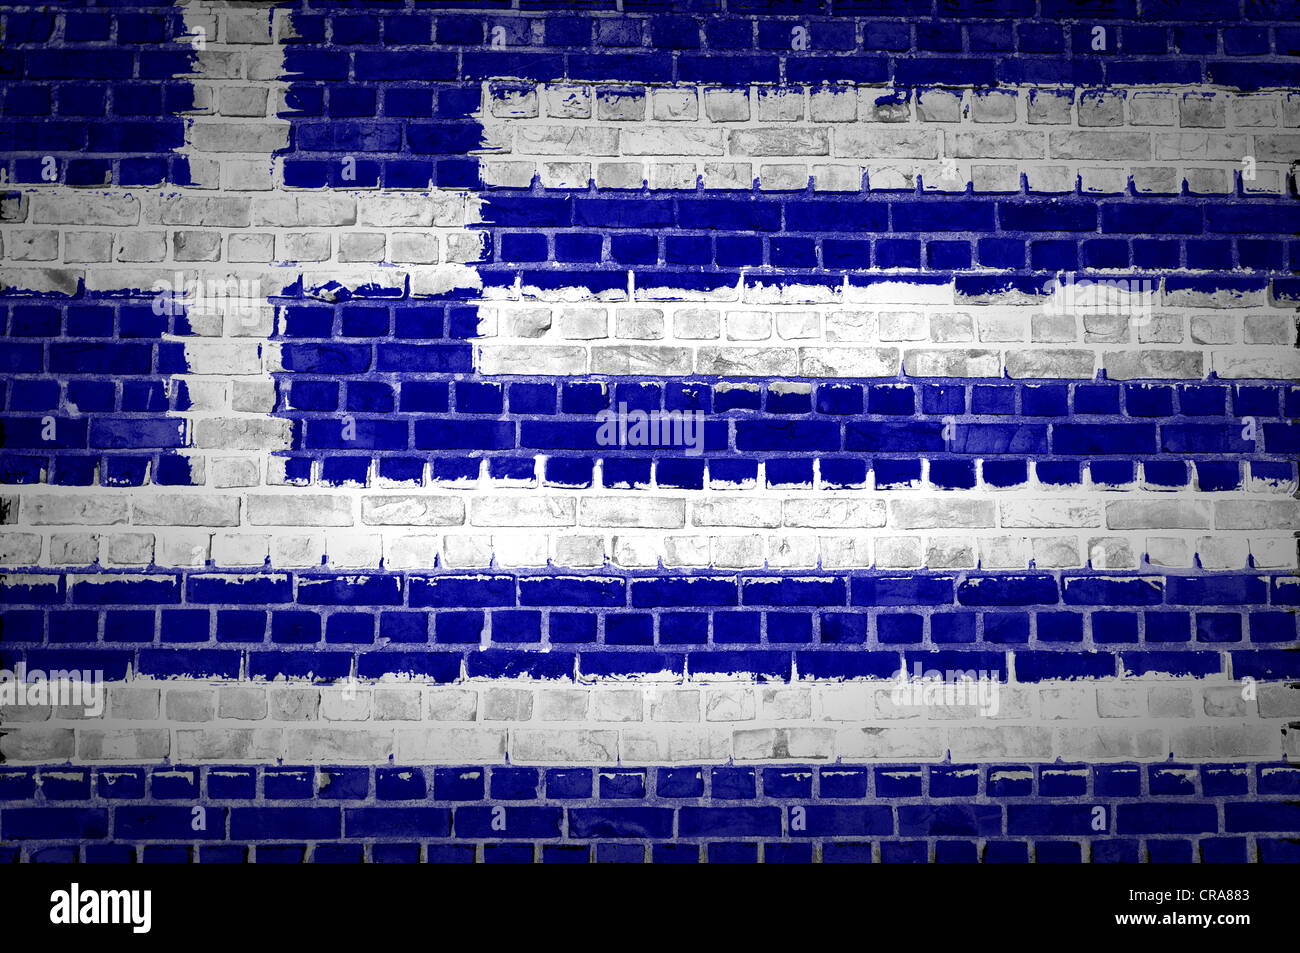 An Image Of The Greece Flag Painted On A Brick Wall In An Urban Stock Photo Alamy